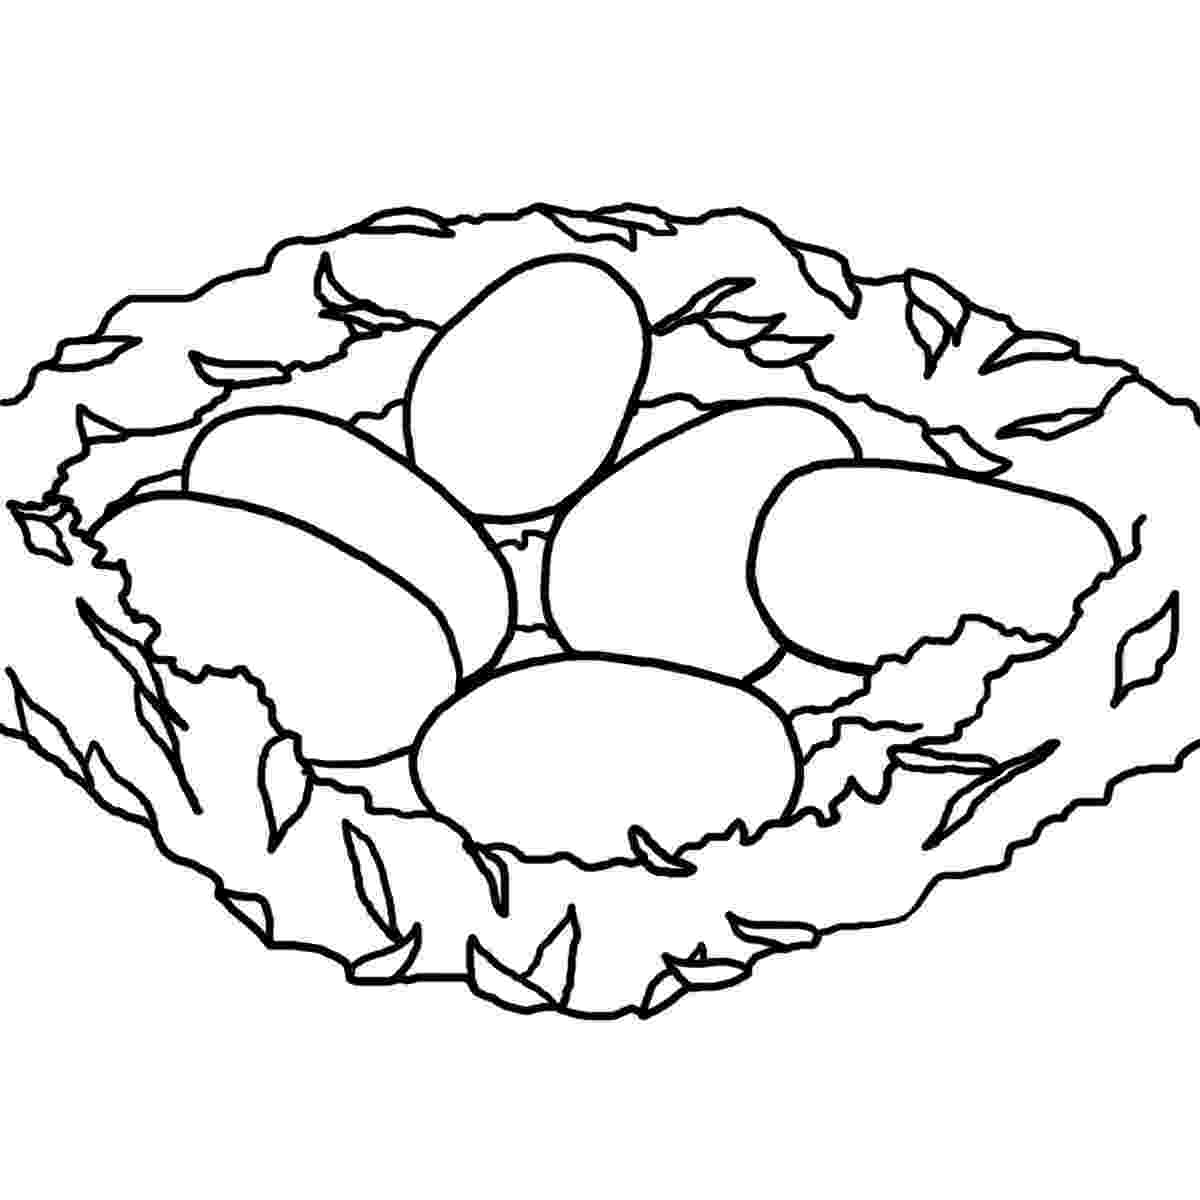 western diamondback rattlesnake coloring pages rattlesnakes drawing at getdrawingscom free for western coloring diamondback pages rattlesnake